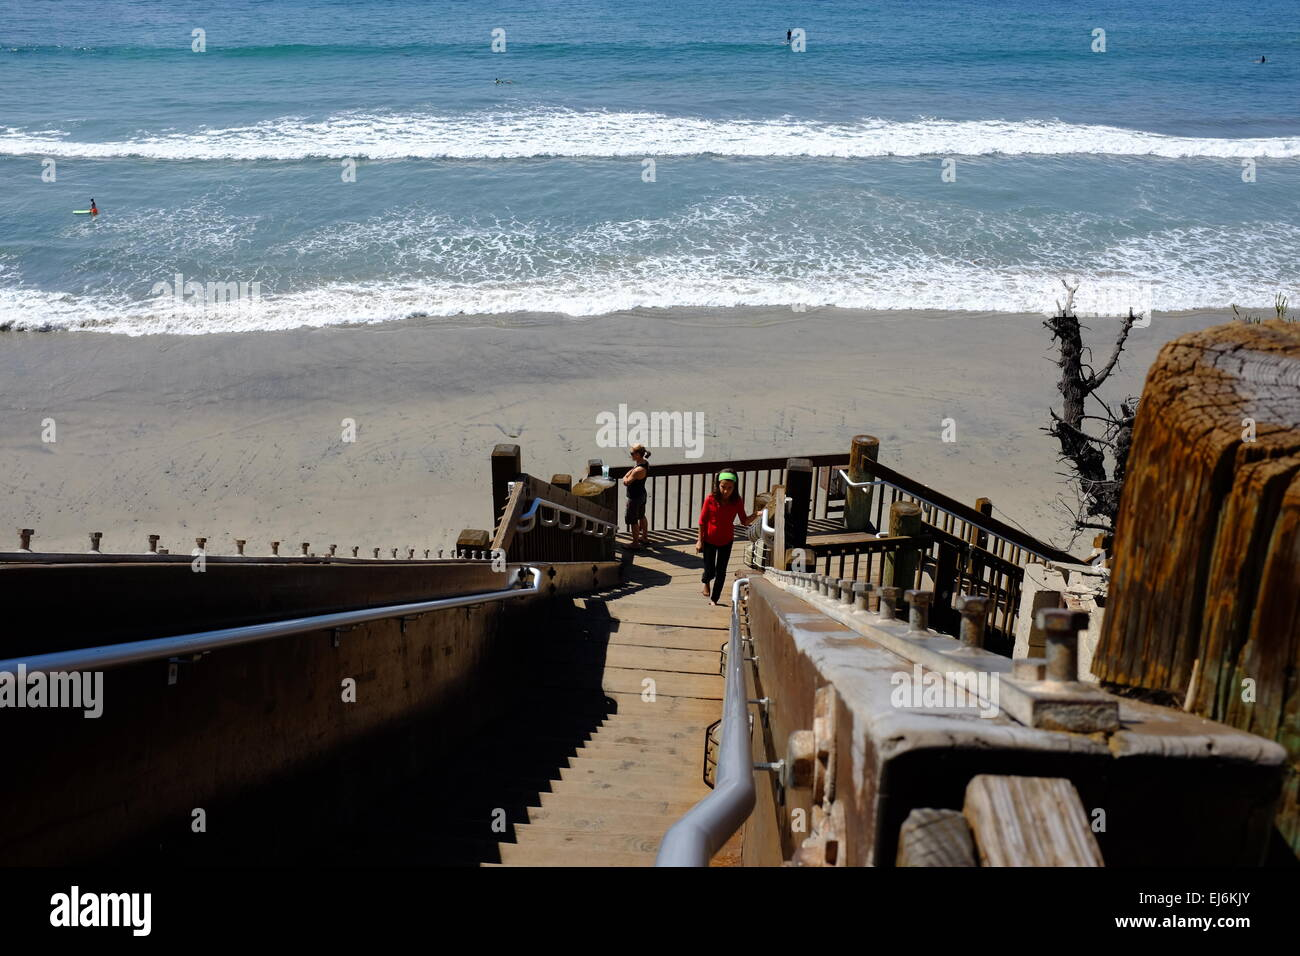 Grandview Beach Access In Encinitas, CA, Woman Walking Up The Stairs From  The Beach, Surf In The Background